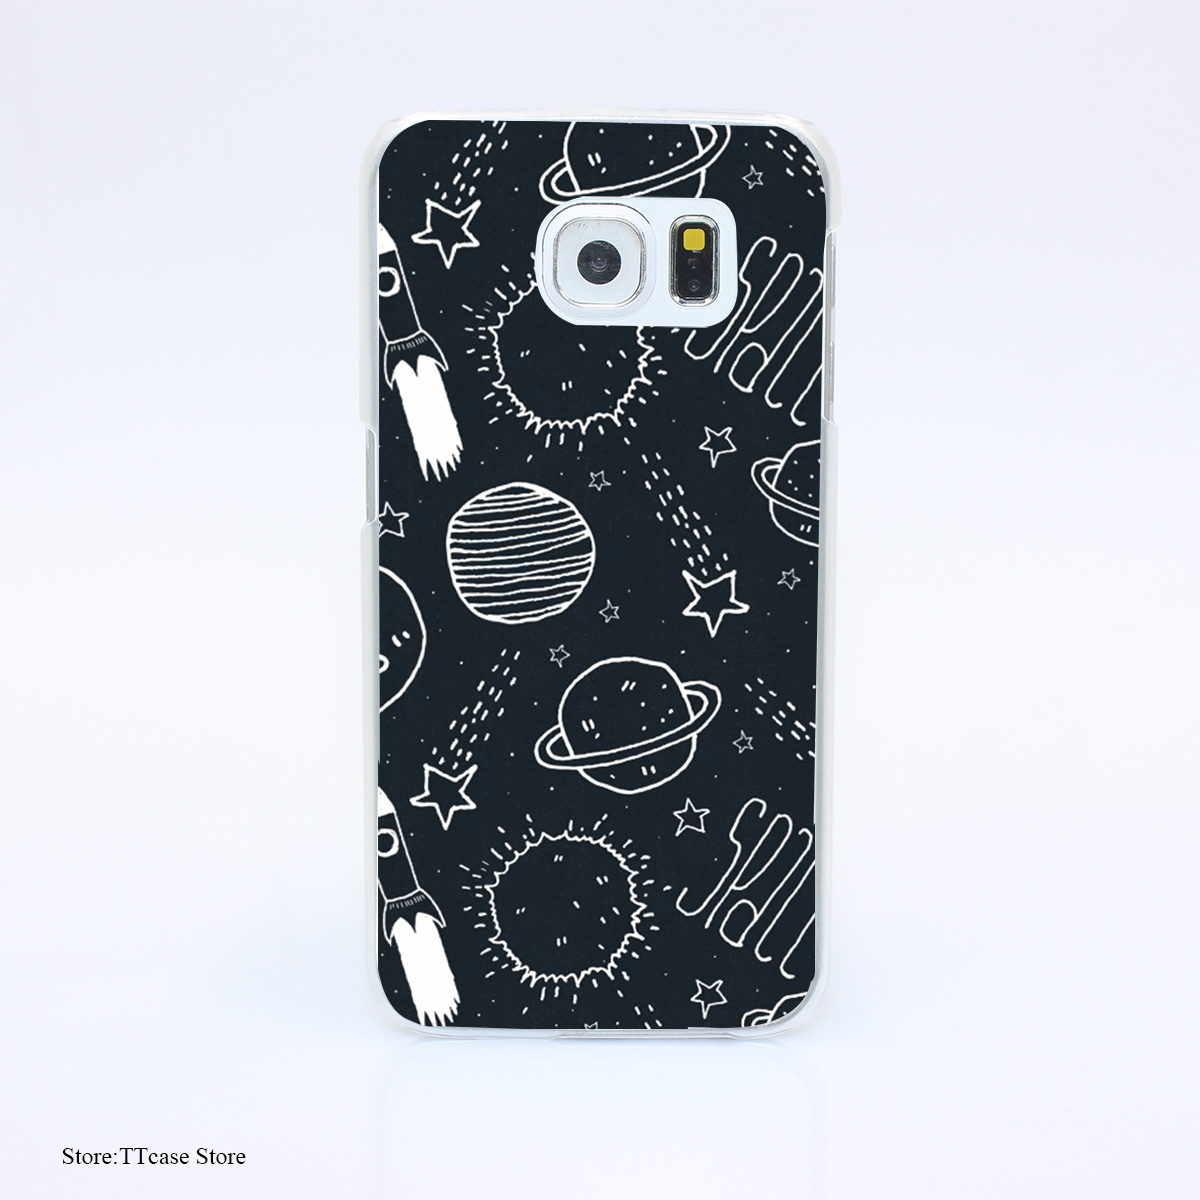 3088G Space Doodles Print Hard Transparent font b Case b font Cover for Galaxy S3 S4